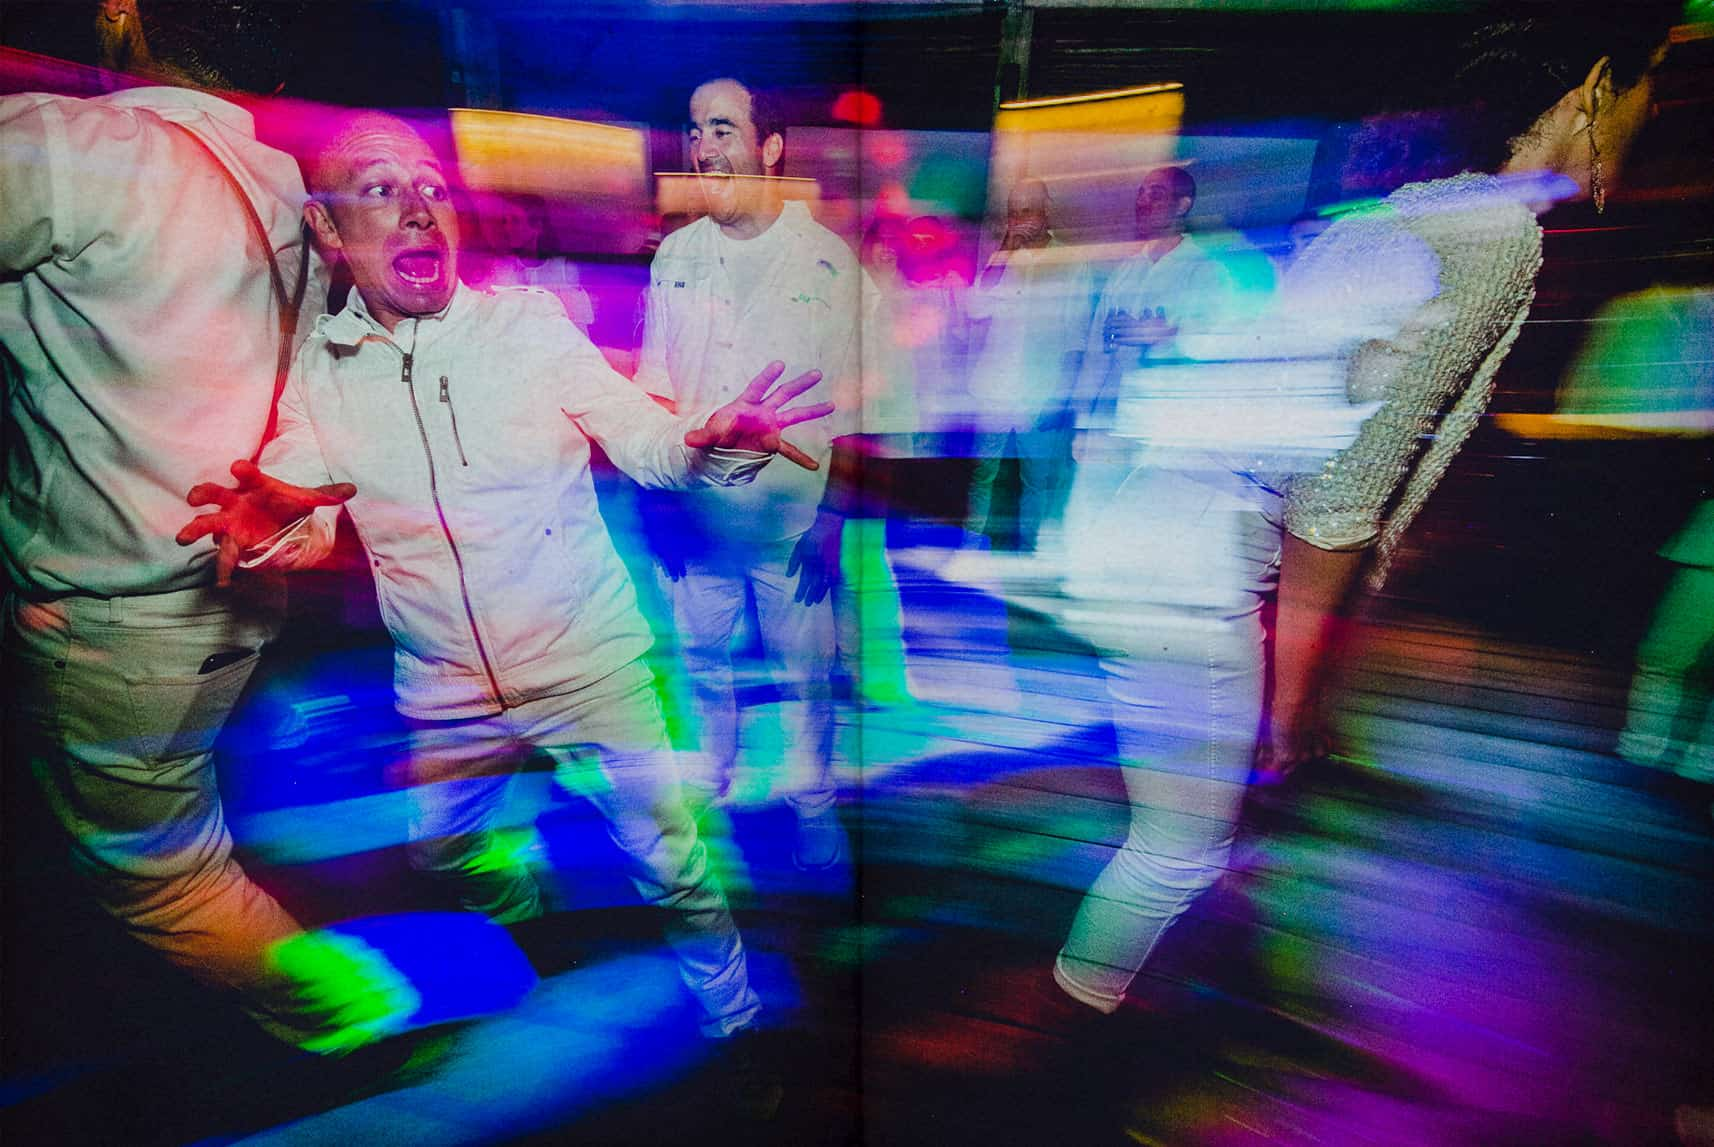 a guy screaming in the dance floor